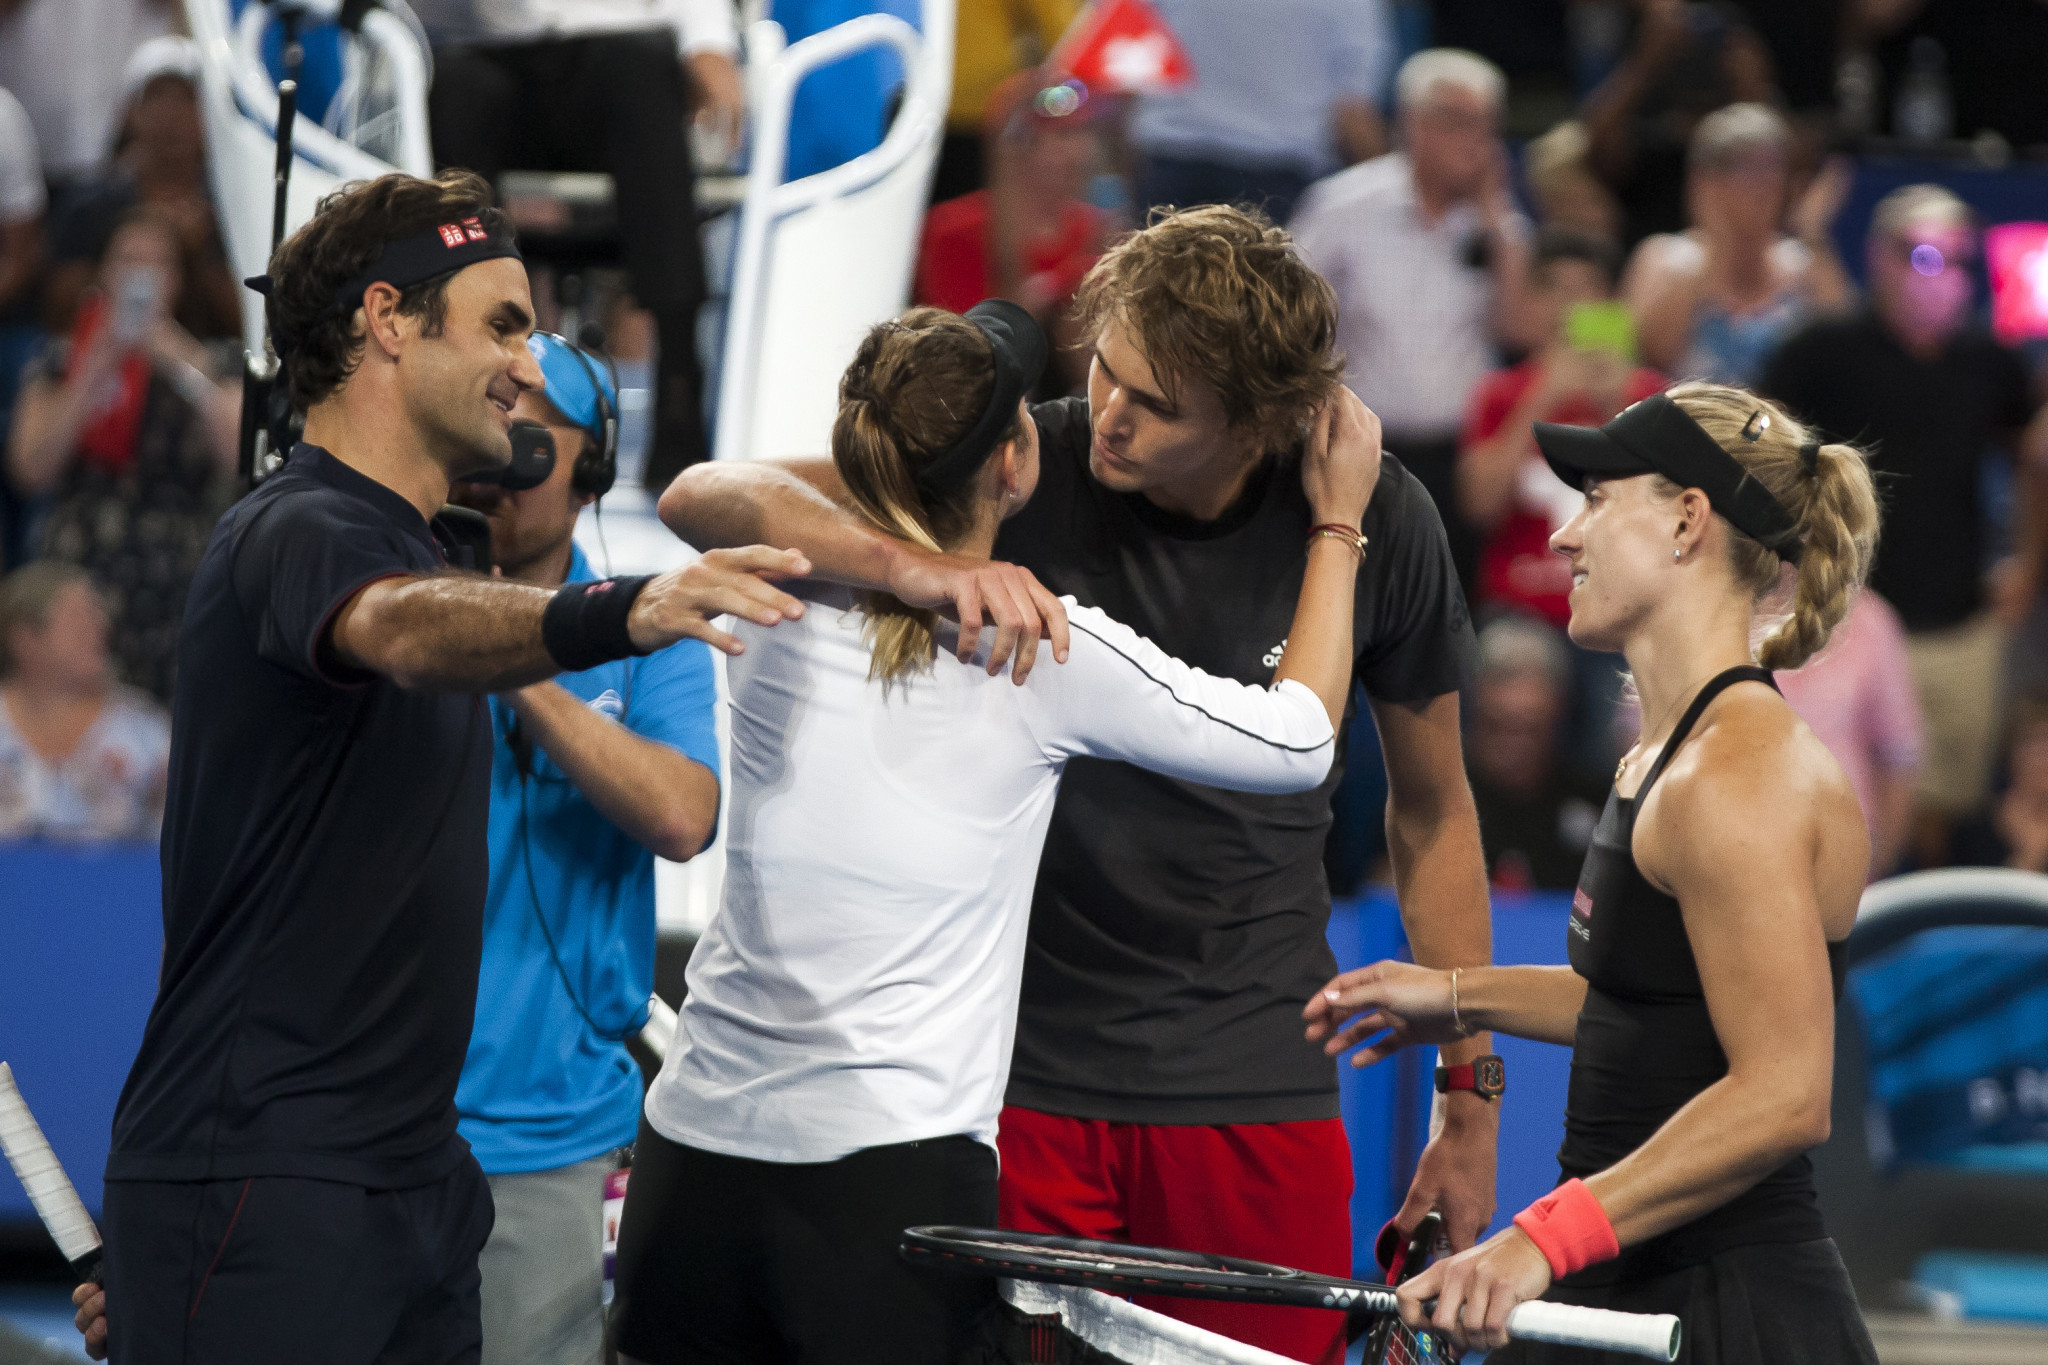 Angelique Kerber, right, with Alexander Zverev, second right after playing in the Hopman Cup this year against Roger Federer and Belinda Bencic - a partnership they may renew for Tokyo 2020 ©Getty Images